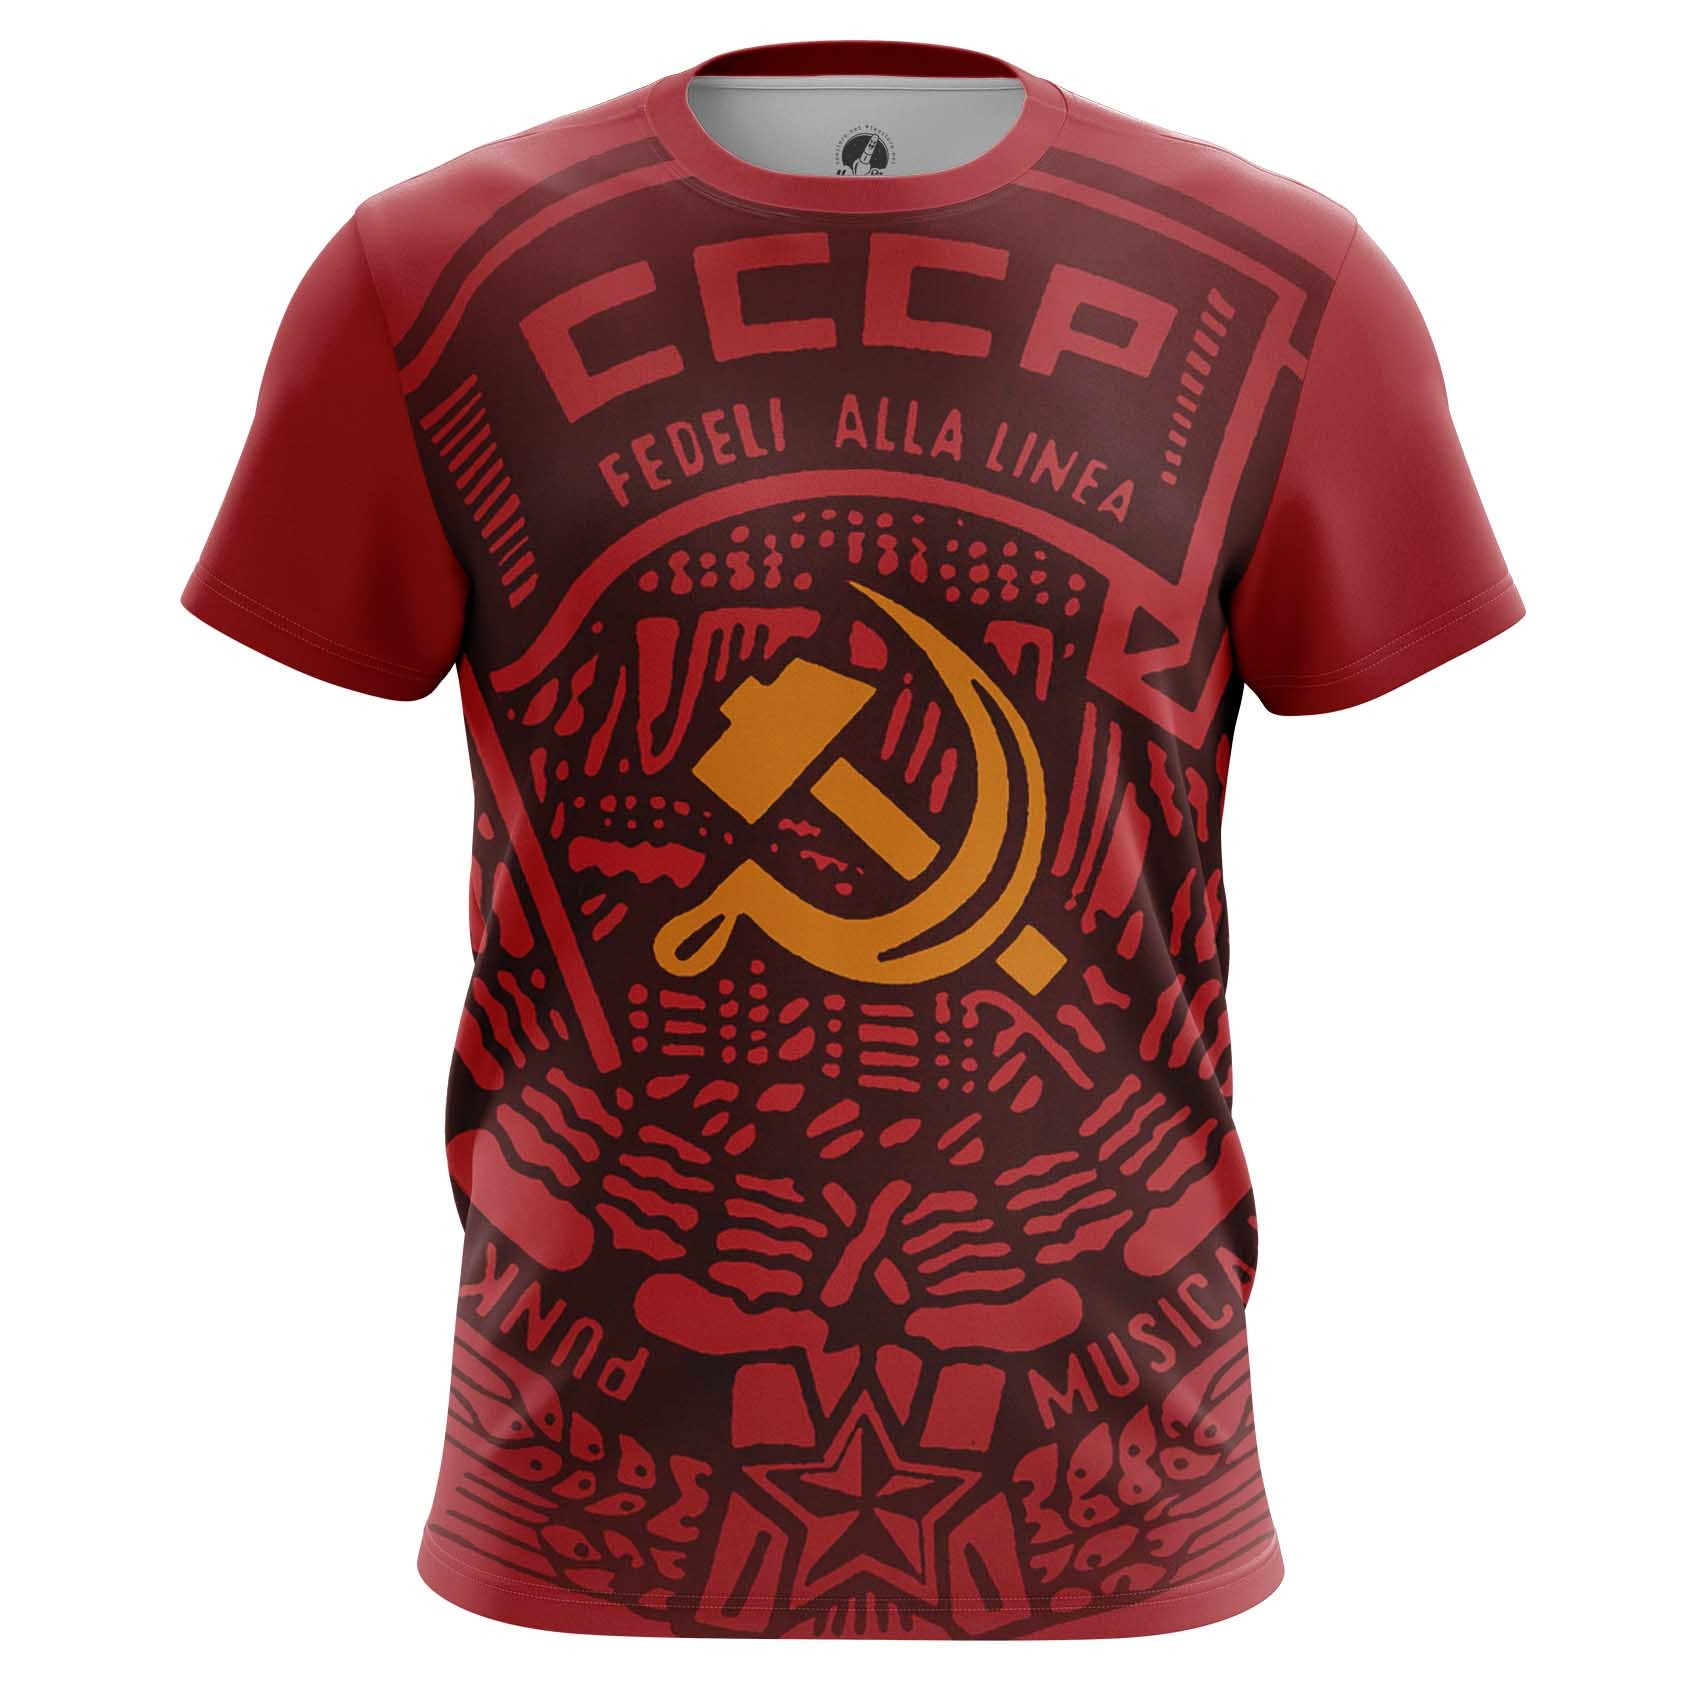 Merchandise Long Sleeve Ussr Red Hammer And Sickle